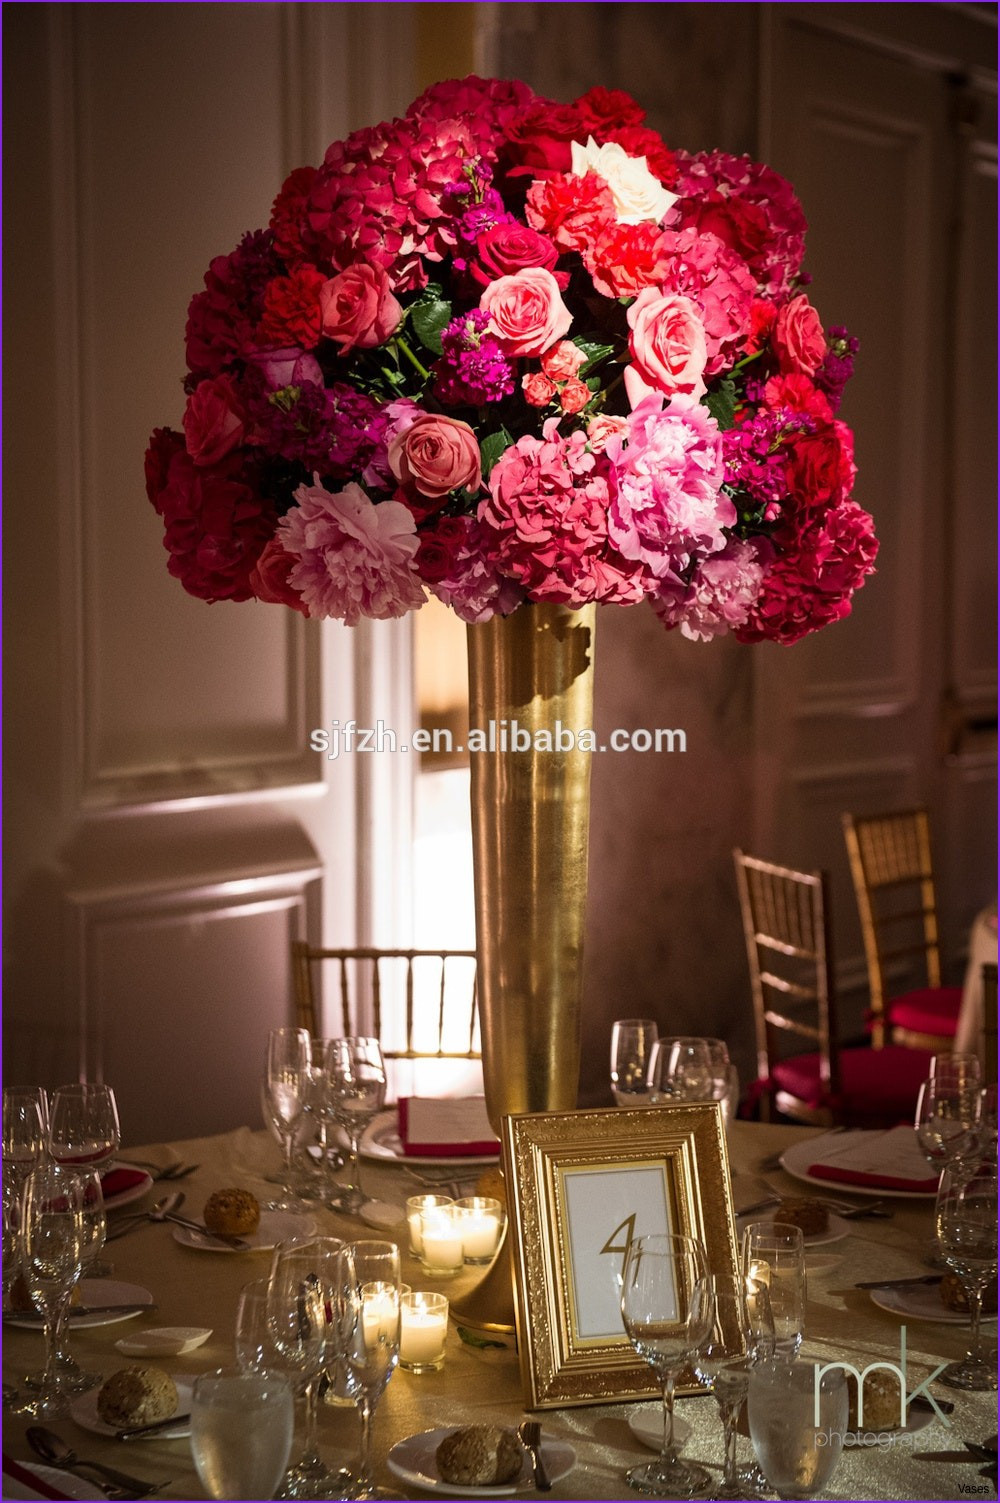 types of vases for centerpieces of red and white wedding decorations inspirational table centerpiece pertaining to information